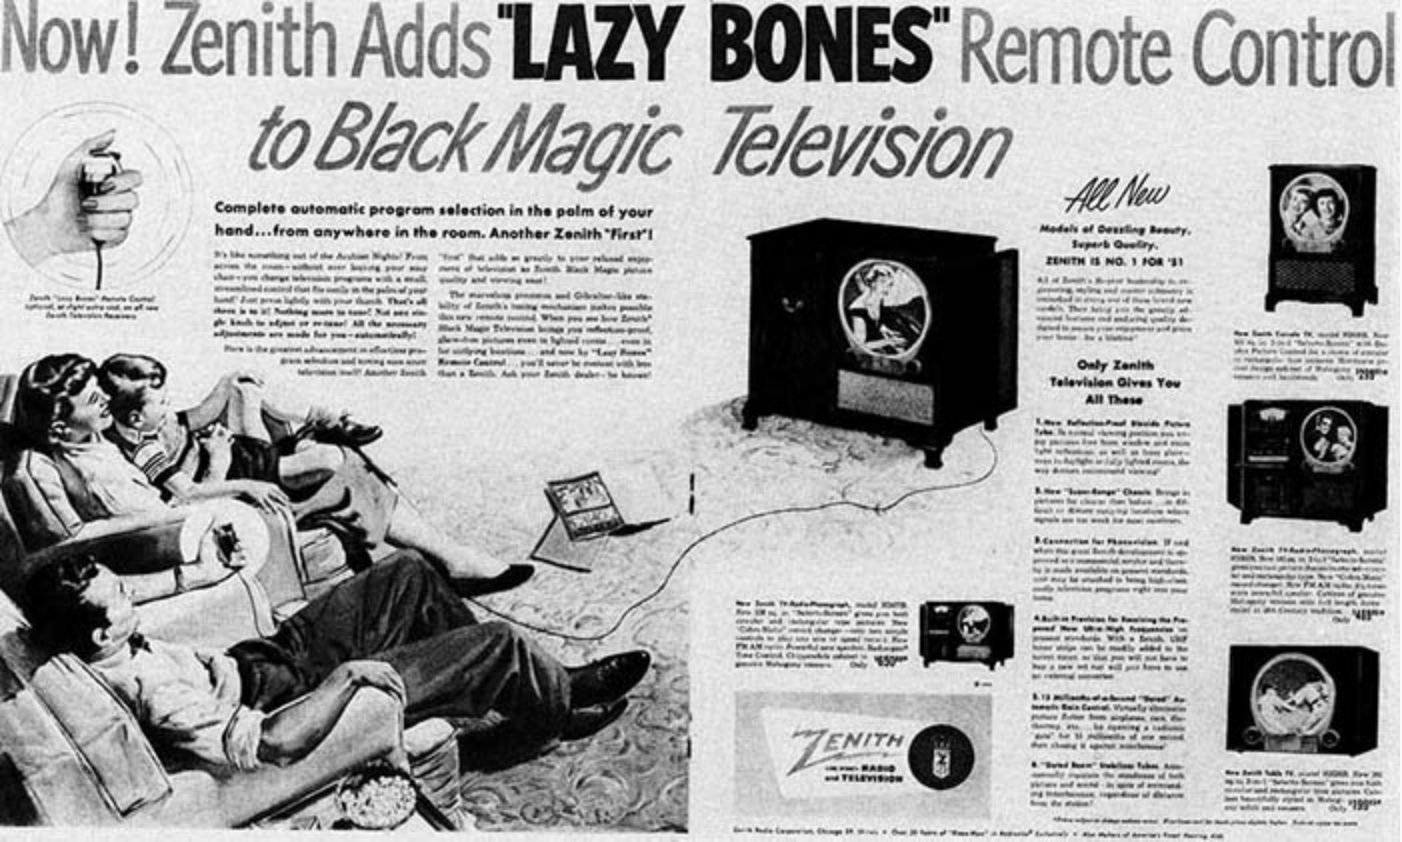 A remote control ad for Zenith televisions